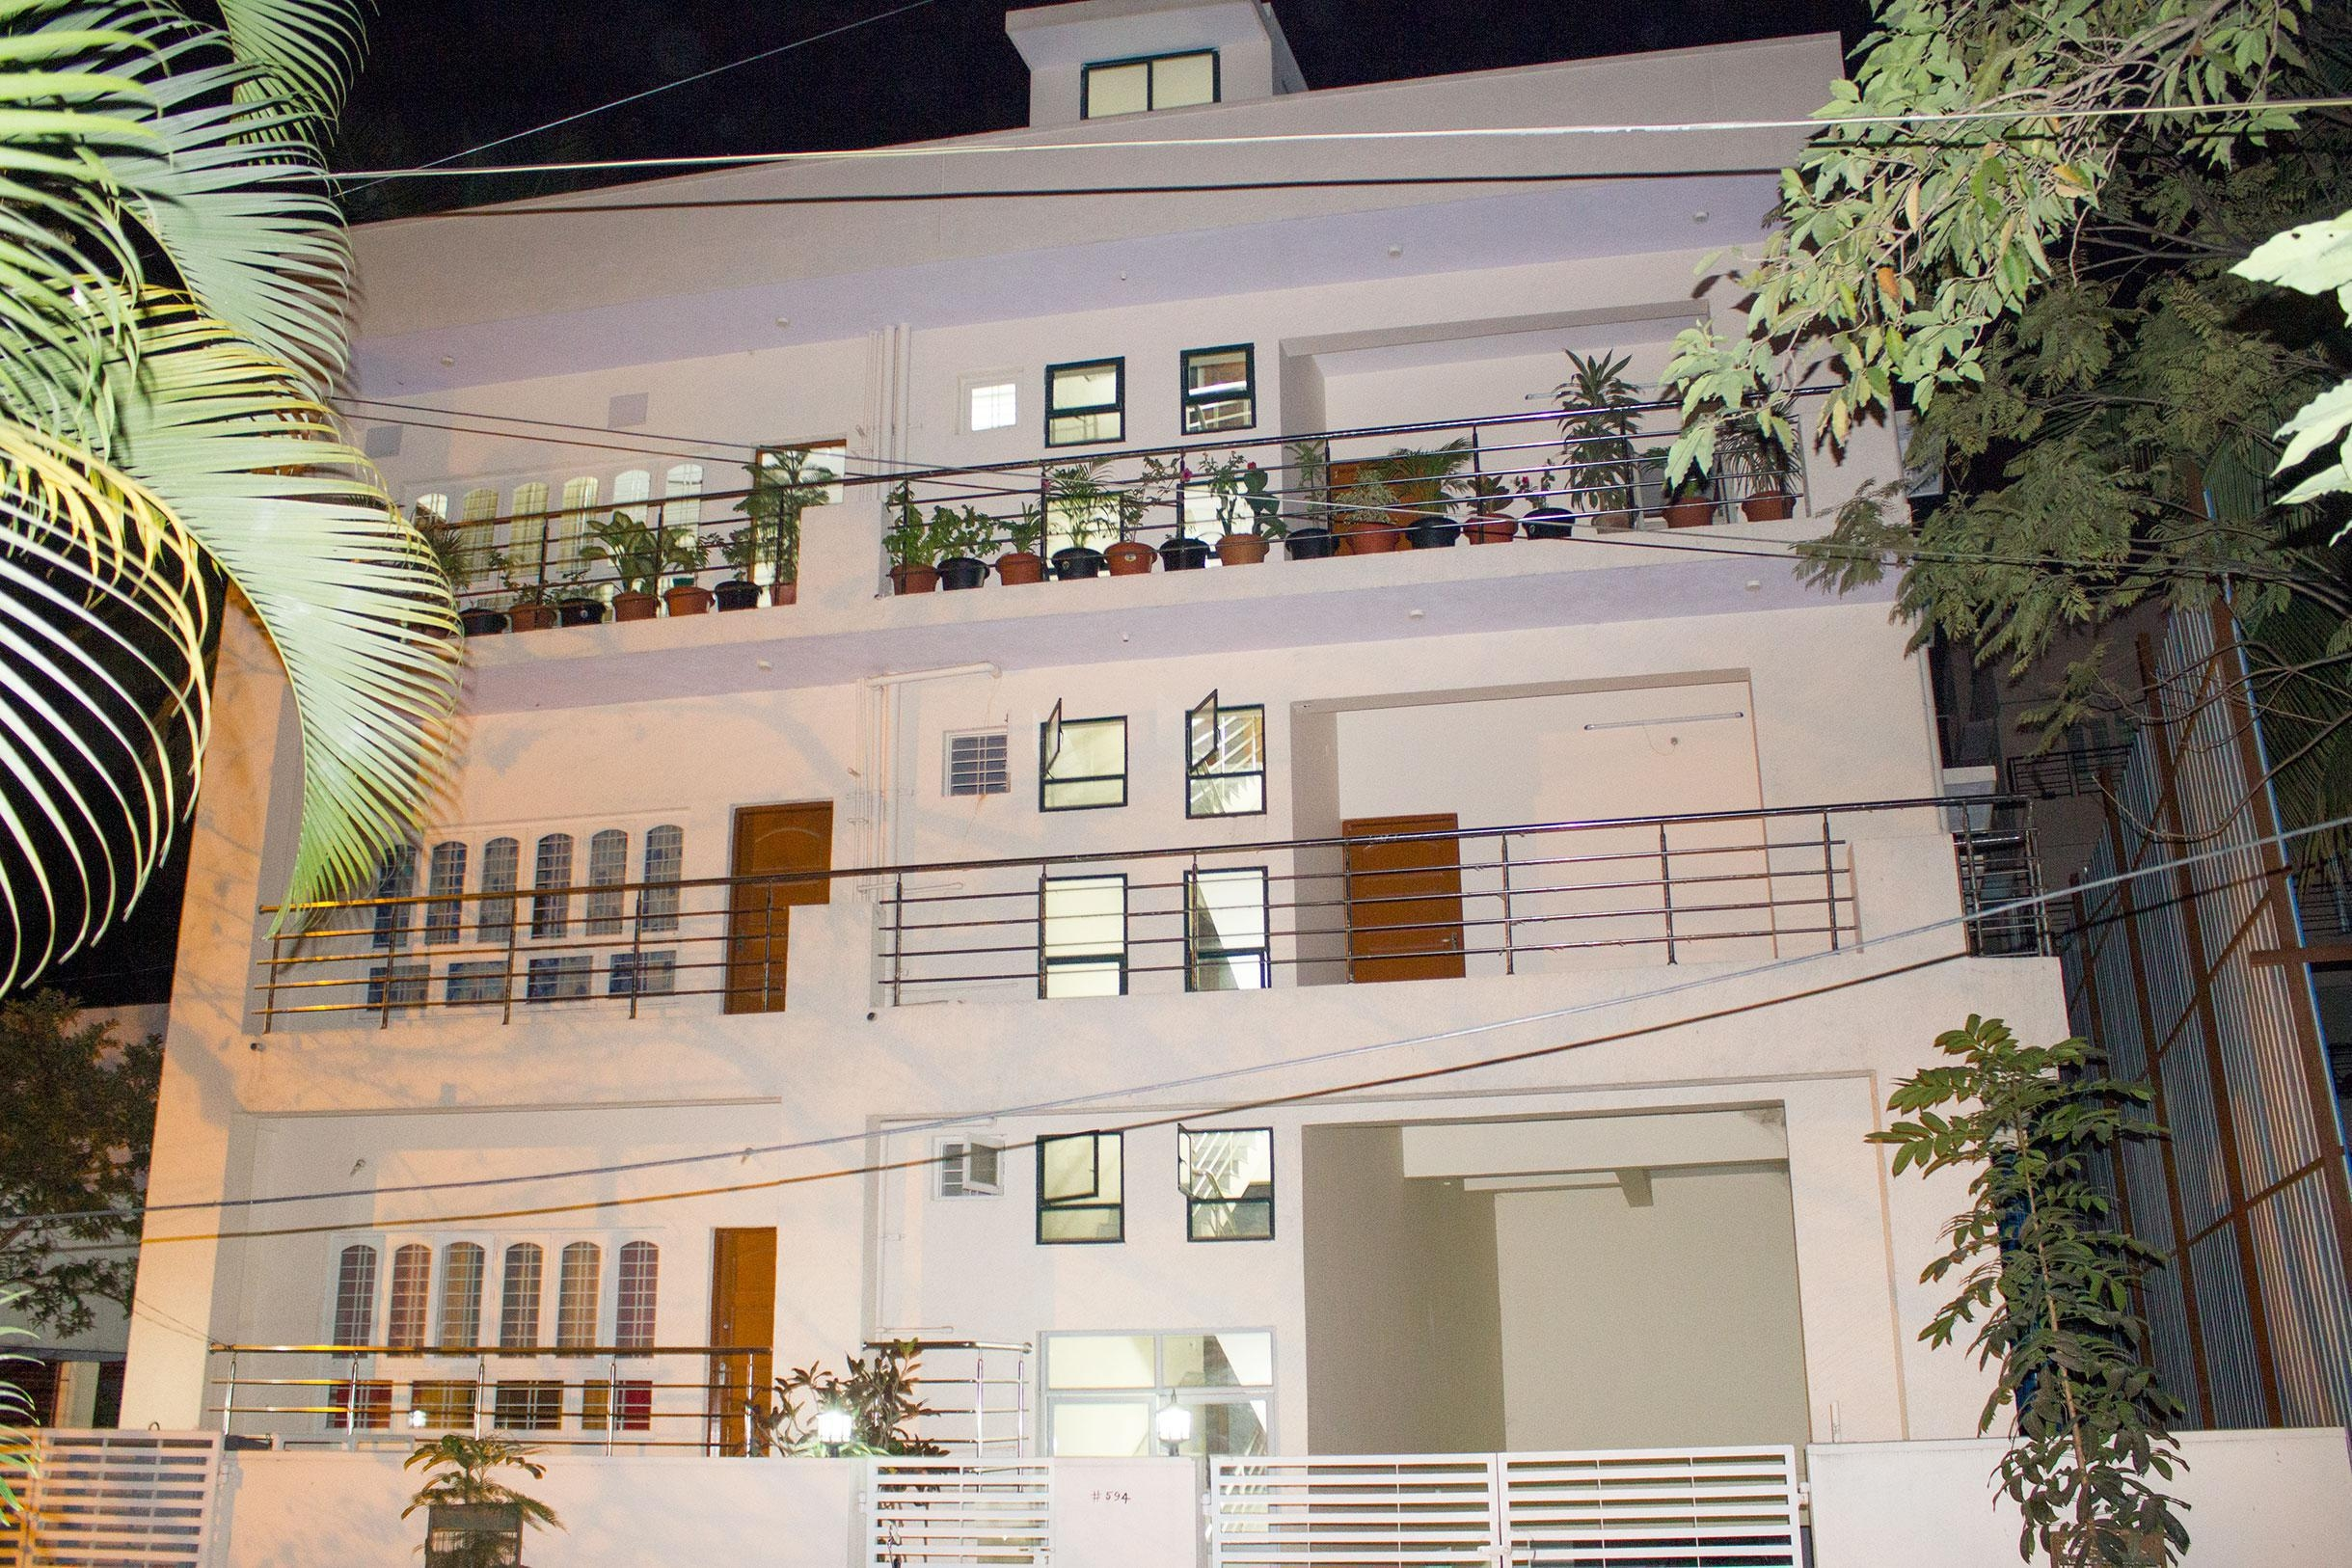 5 BHK Sharing Rooms for Men at ?7250 in J P Nagar, Bangalore